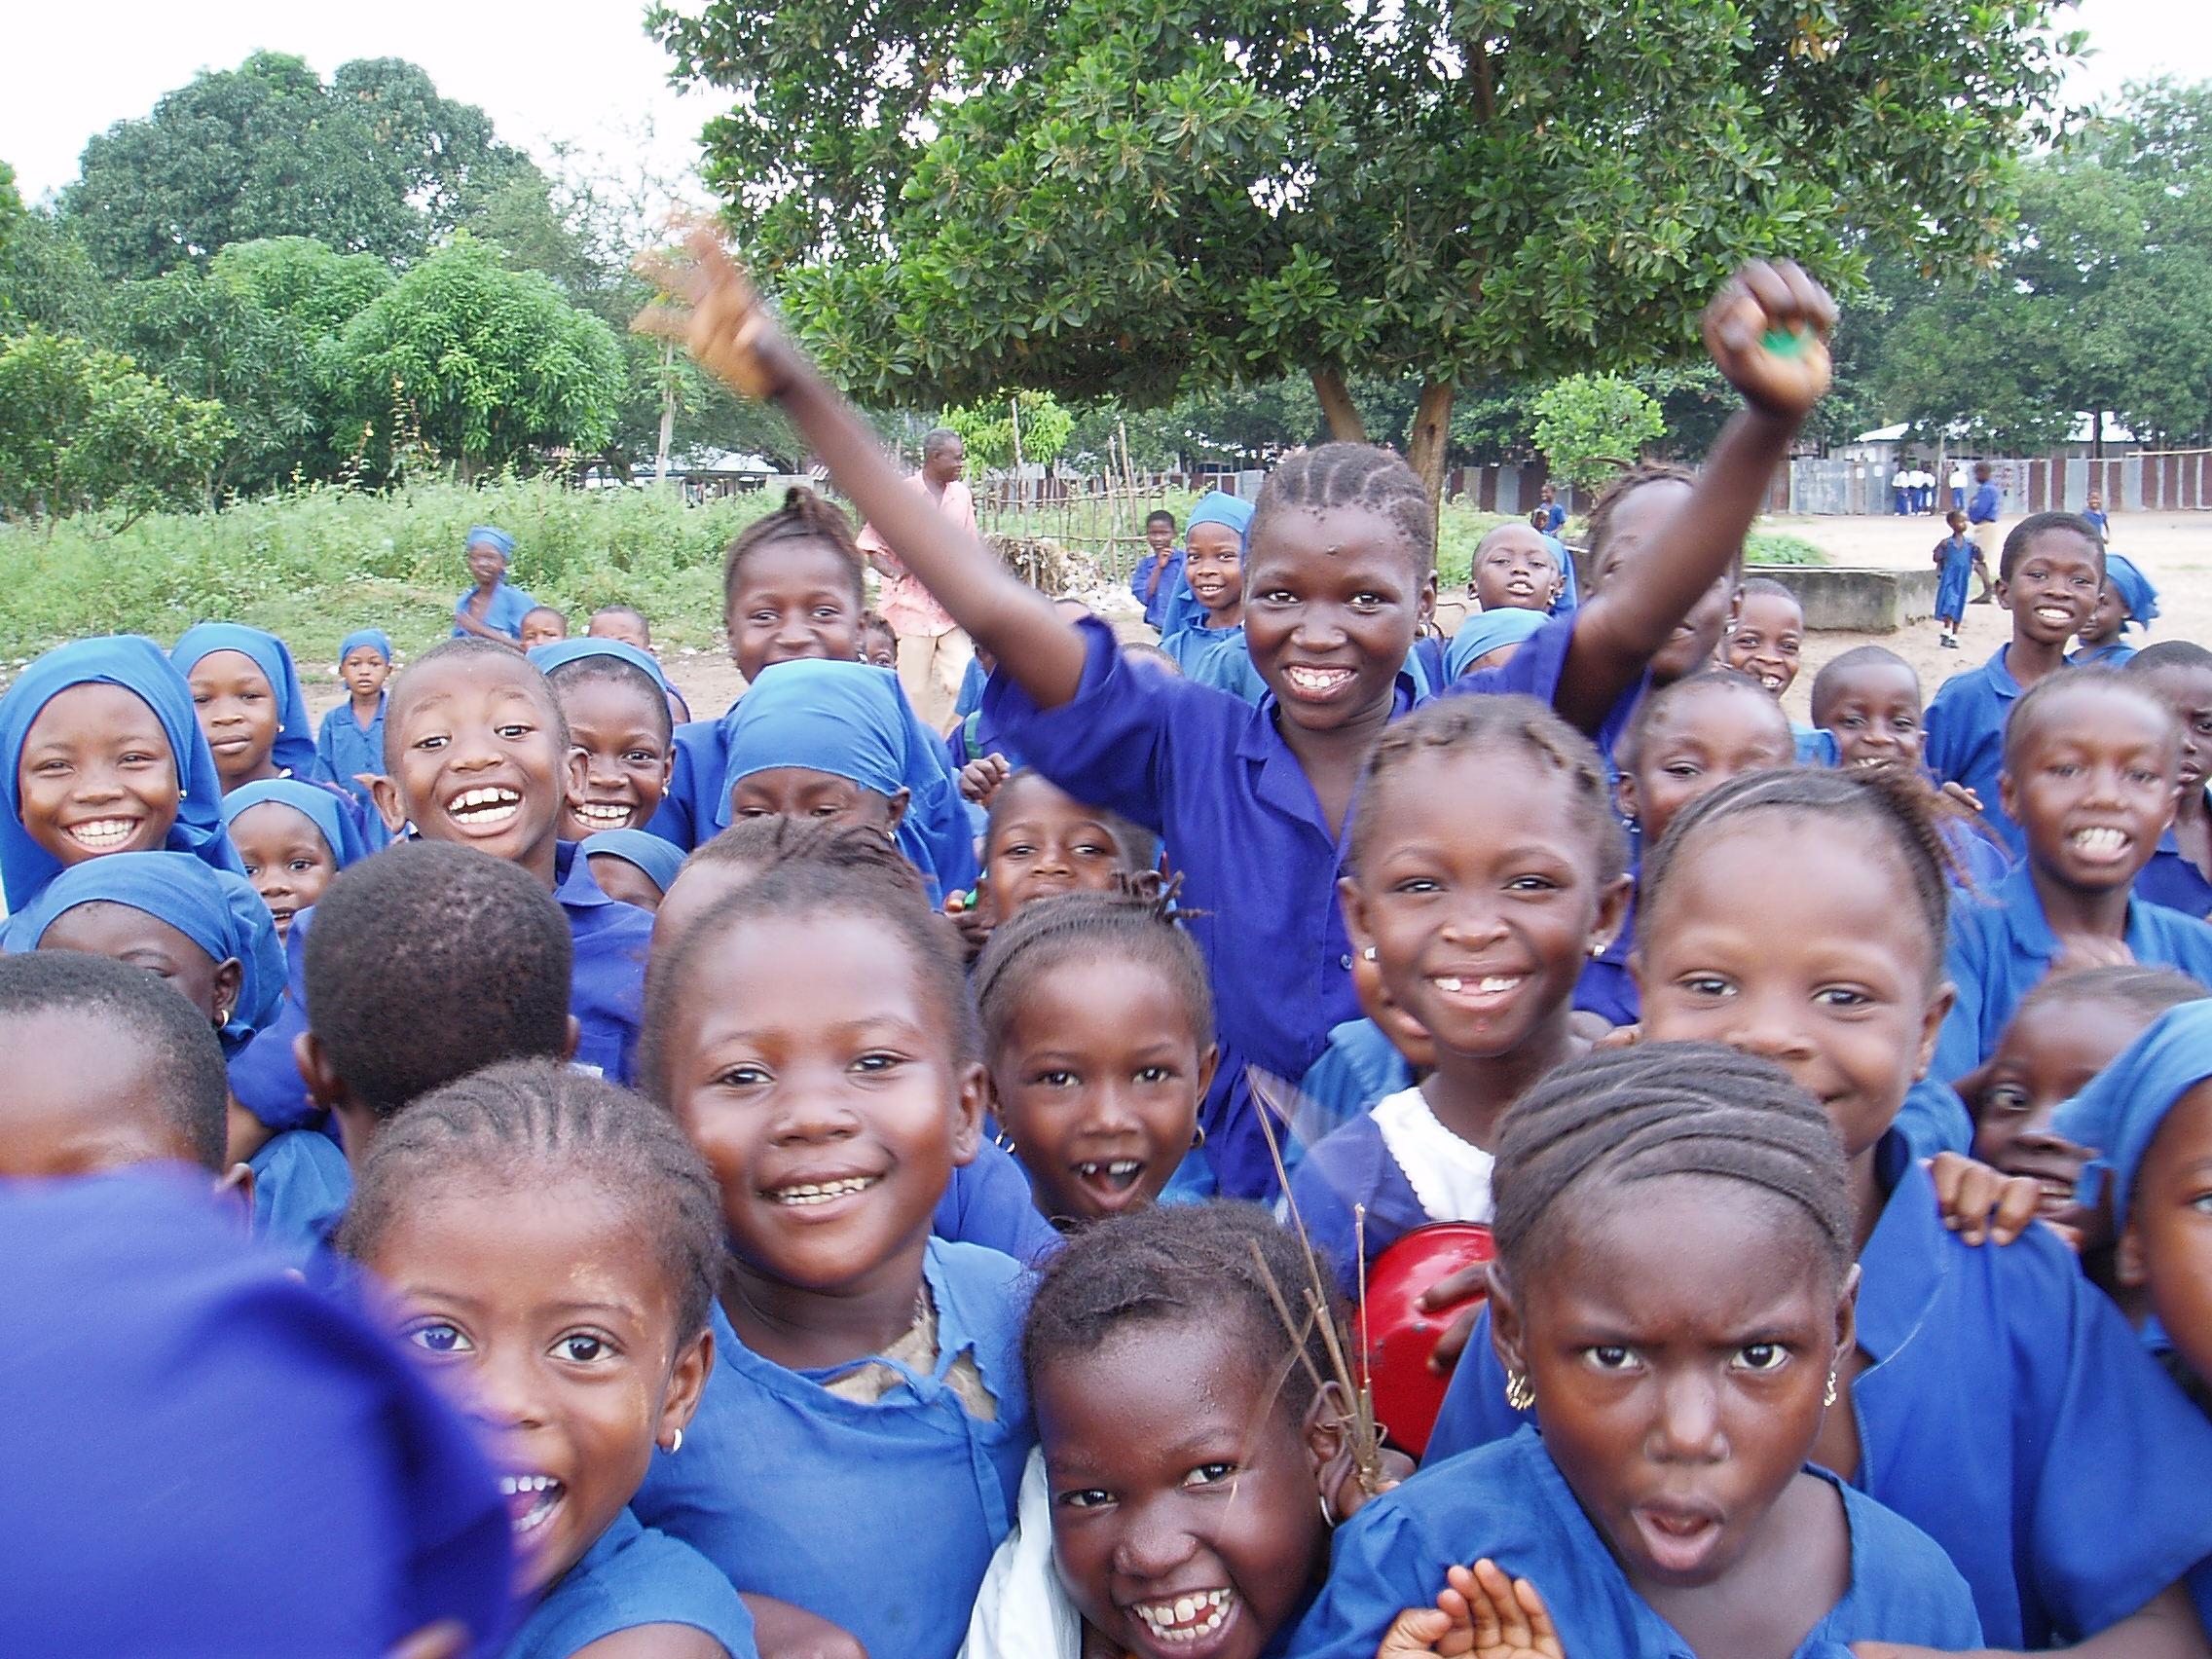 Students in Sierra Leone are happier at school and at home after learning peaceful strategies to deal with conflict. Photo by Jane Weston